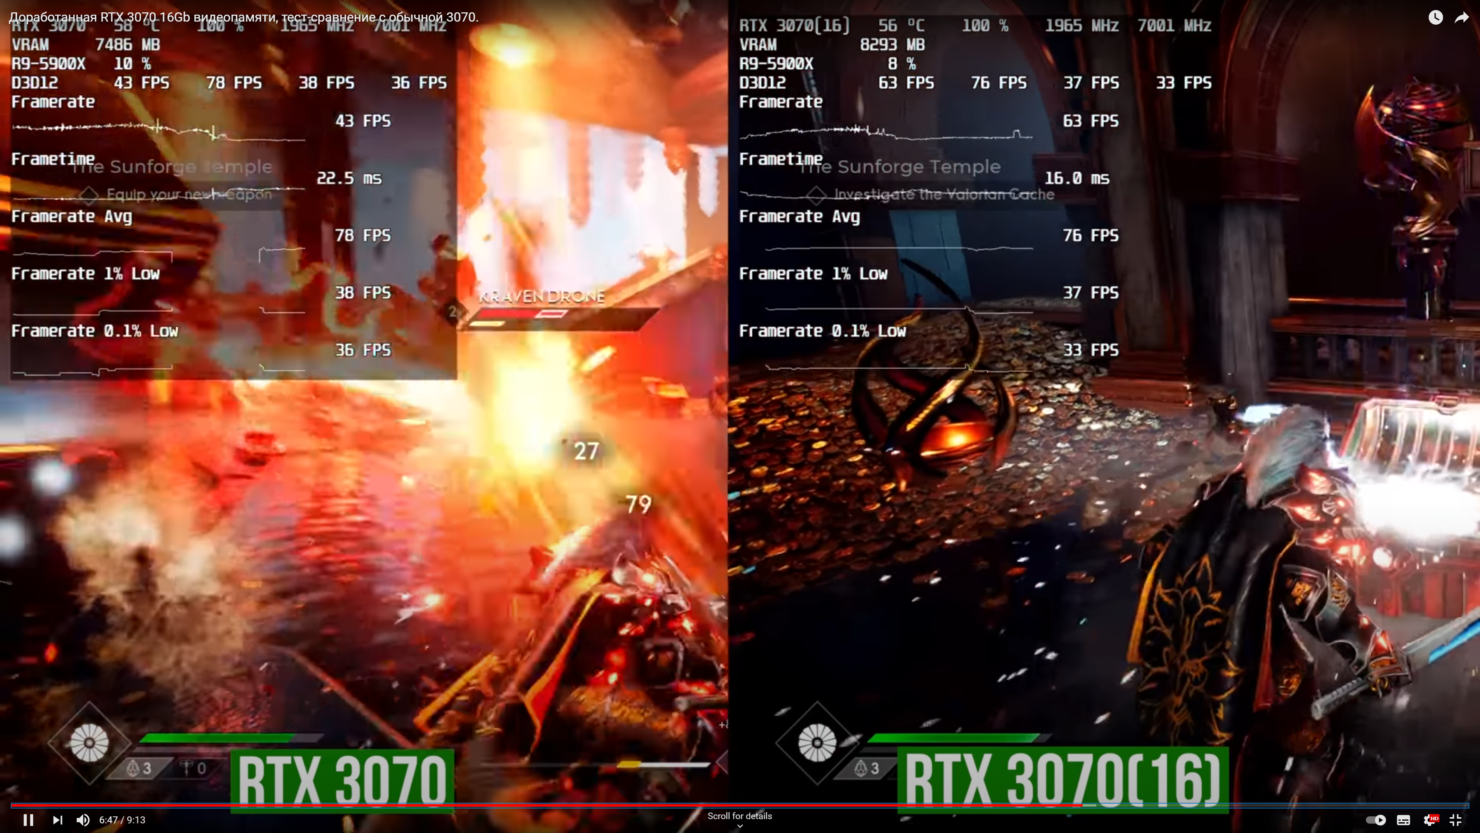 nvidia-geforce-rtx-3070-16-gb-modded-graphics-card-performance-benchmarks-games-_8